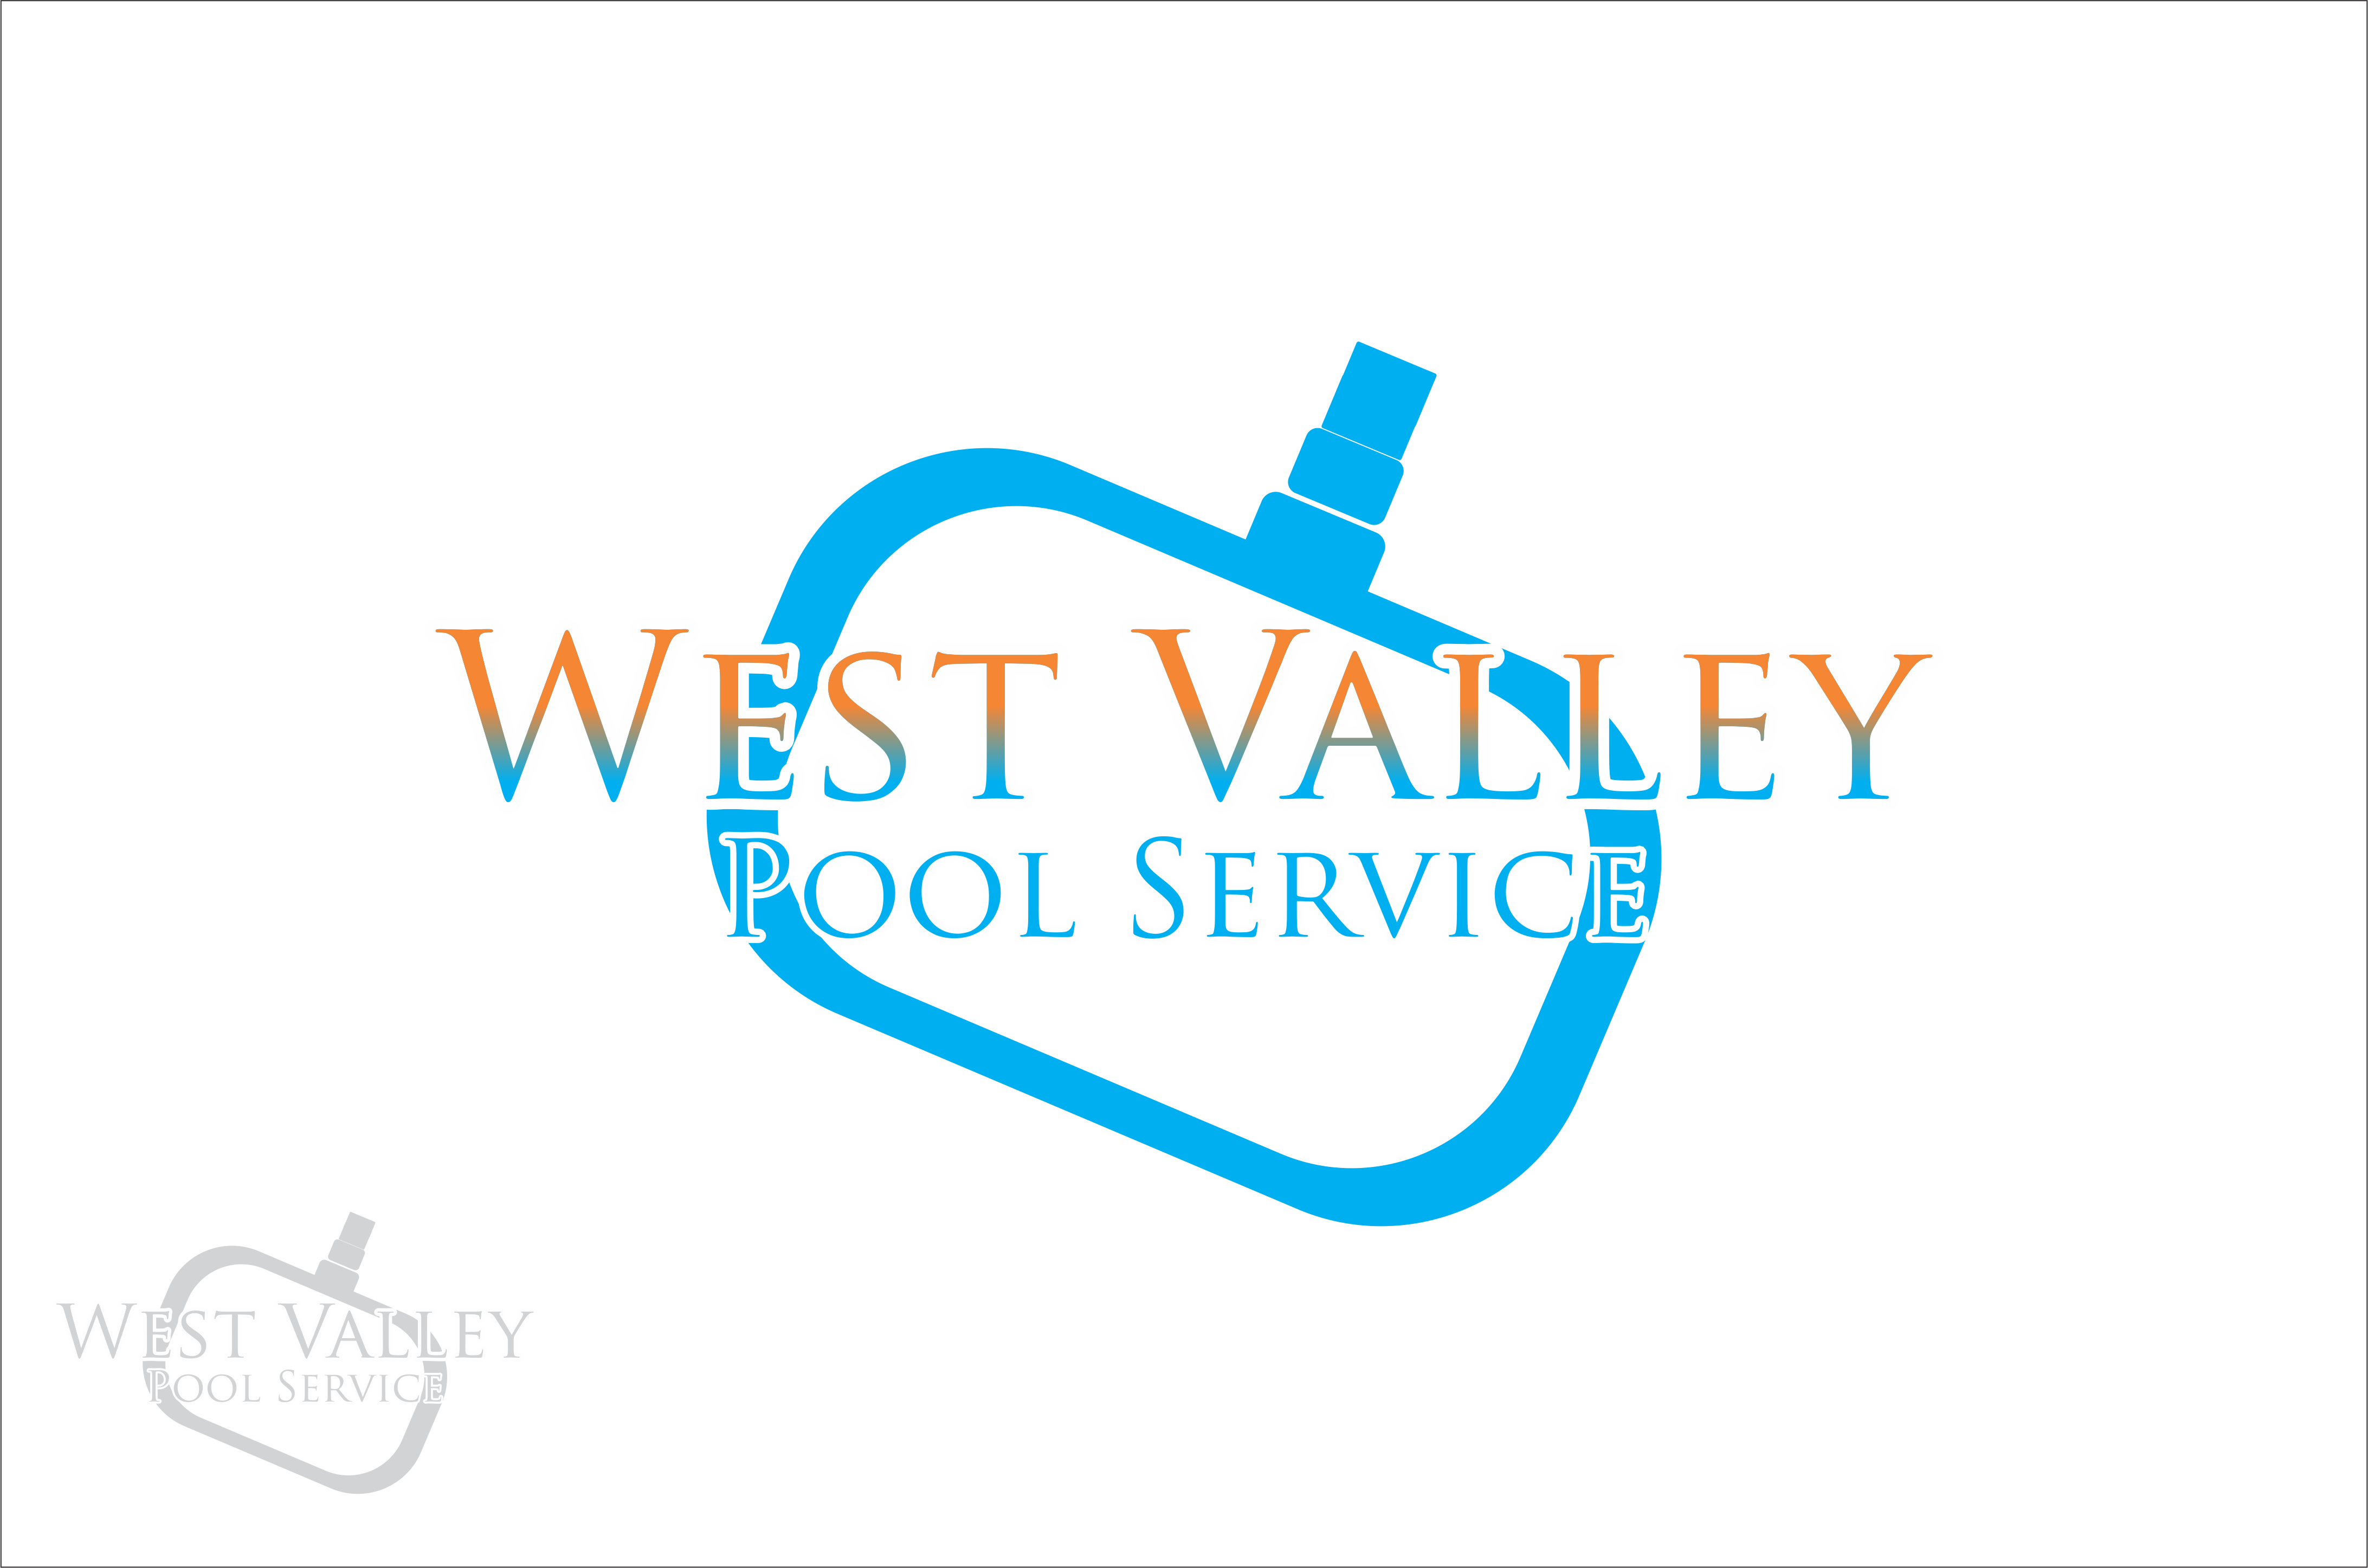 Logo Design by snow - Entry No. 22 in the Logo Design Contest Clever Logo Design for West Valley Pool Service.